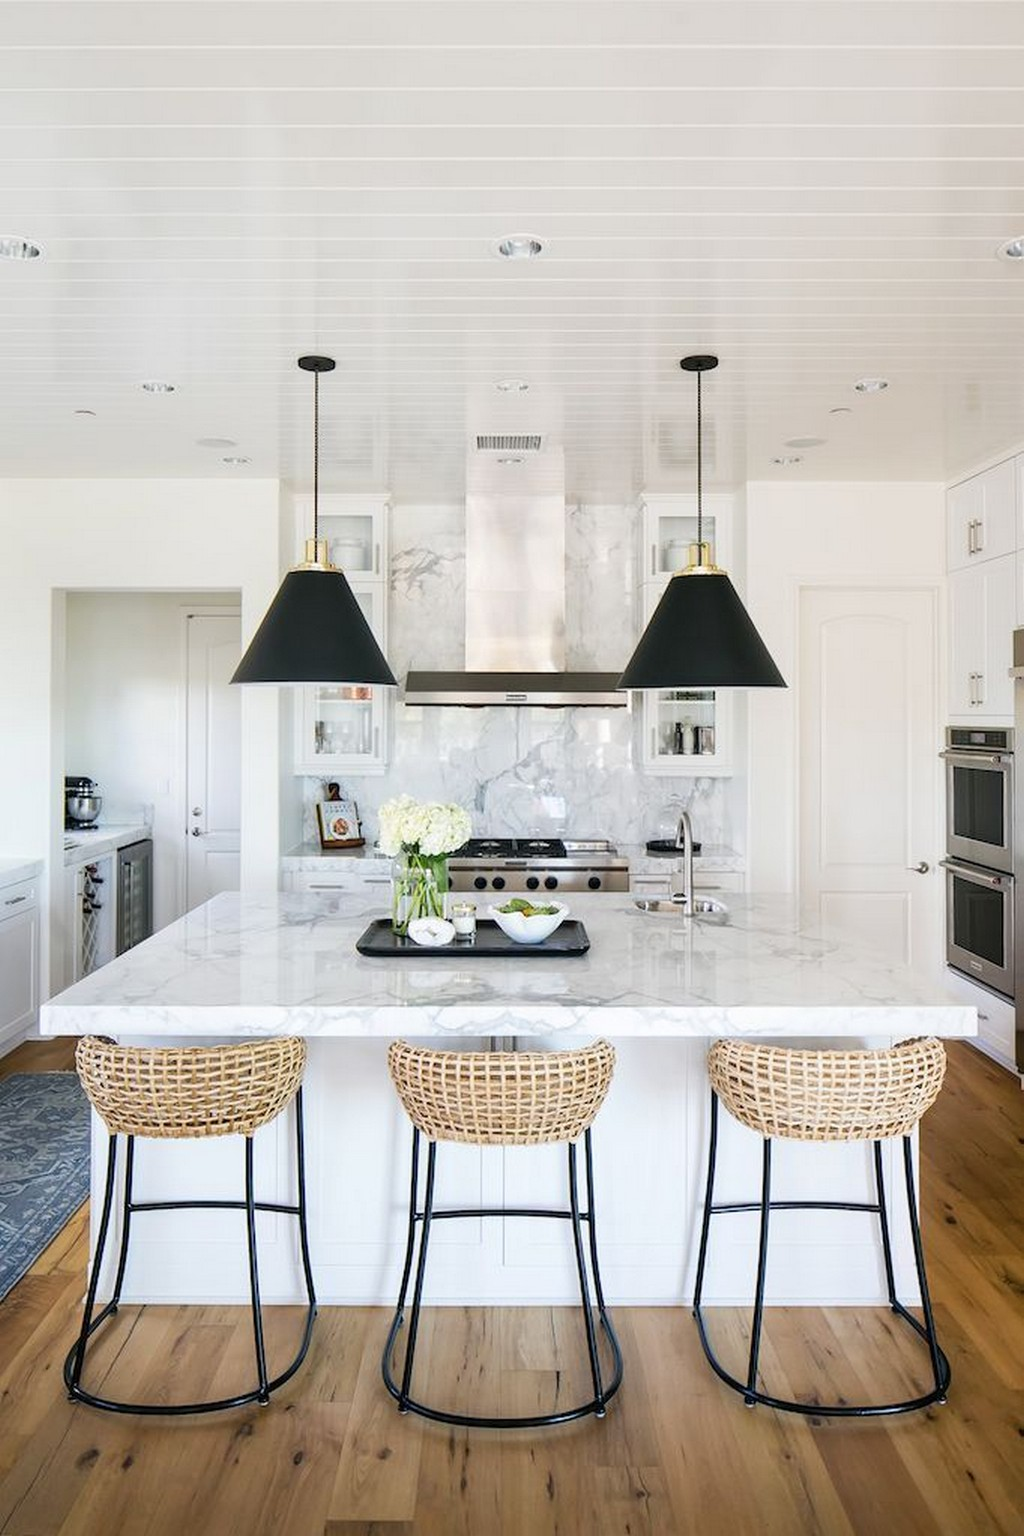 7 kitchen counter stools that will uplift your décor